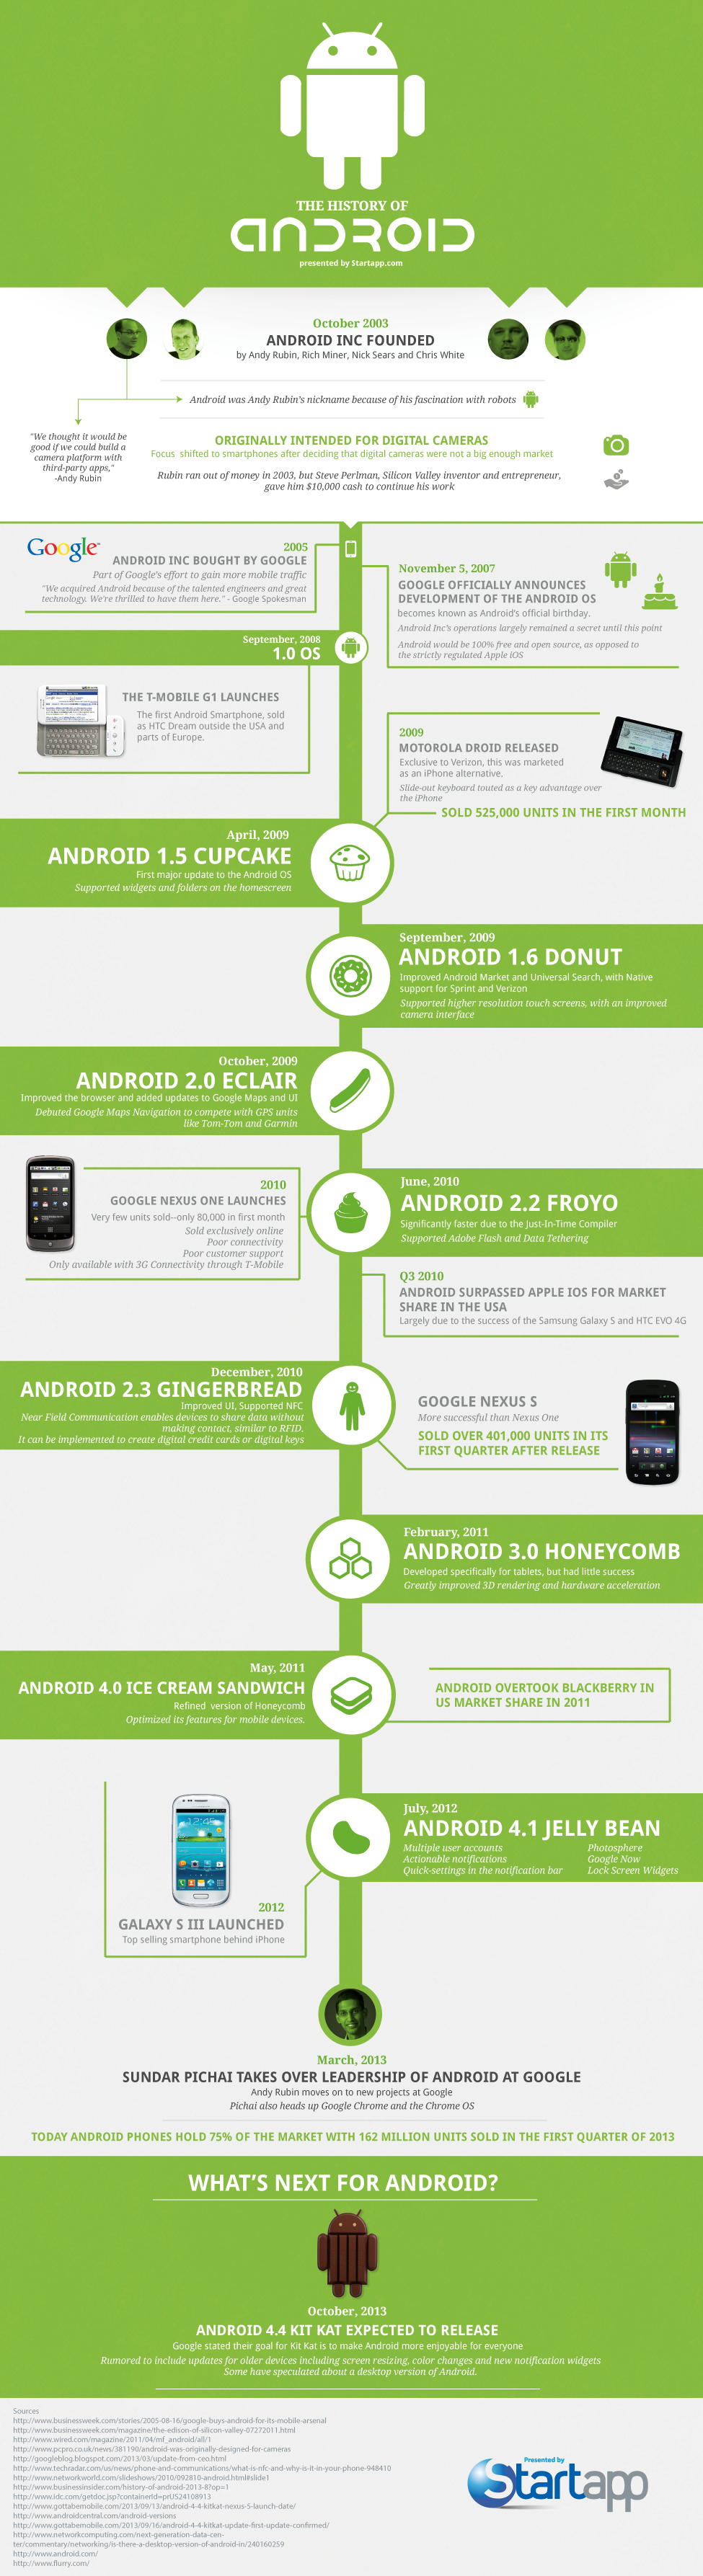 the-history-of-android_526581535548d